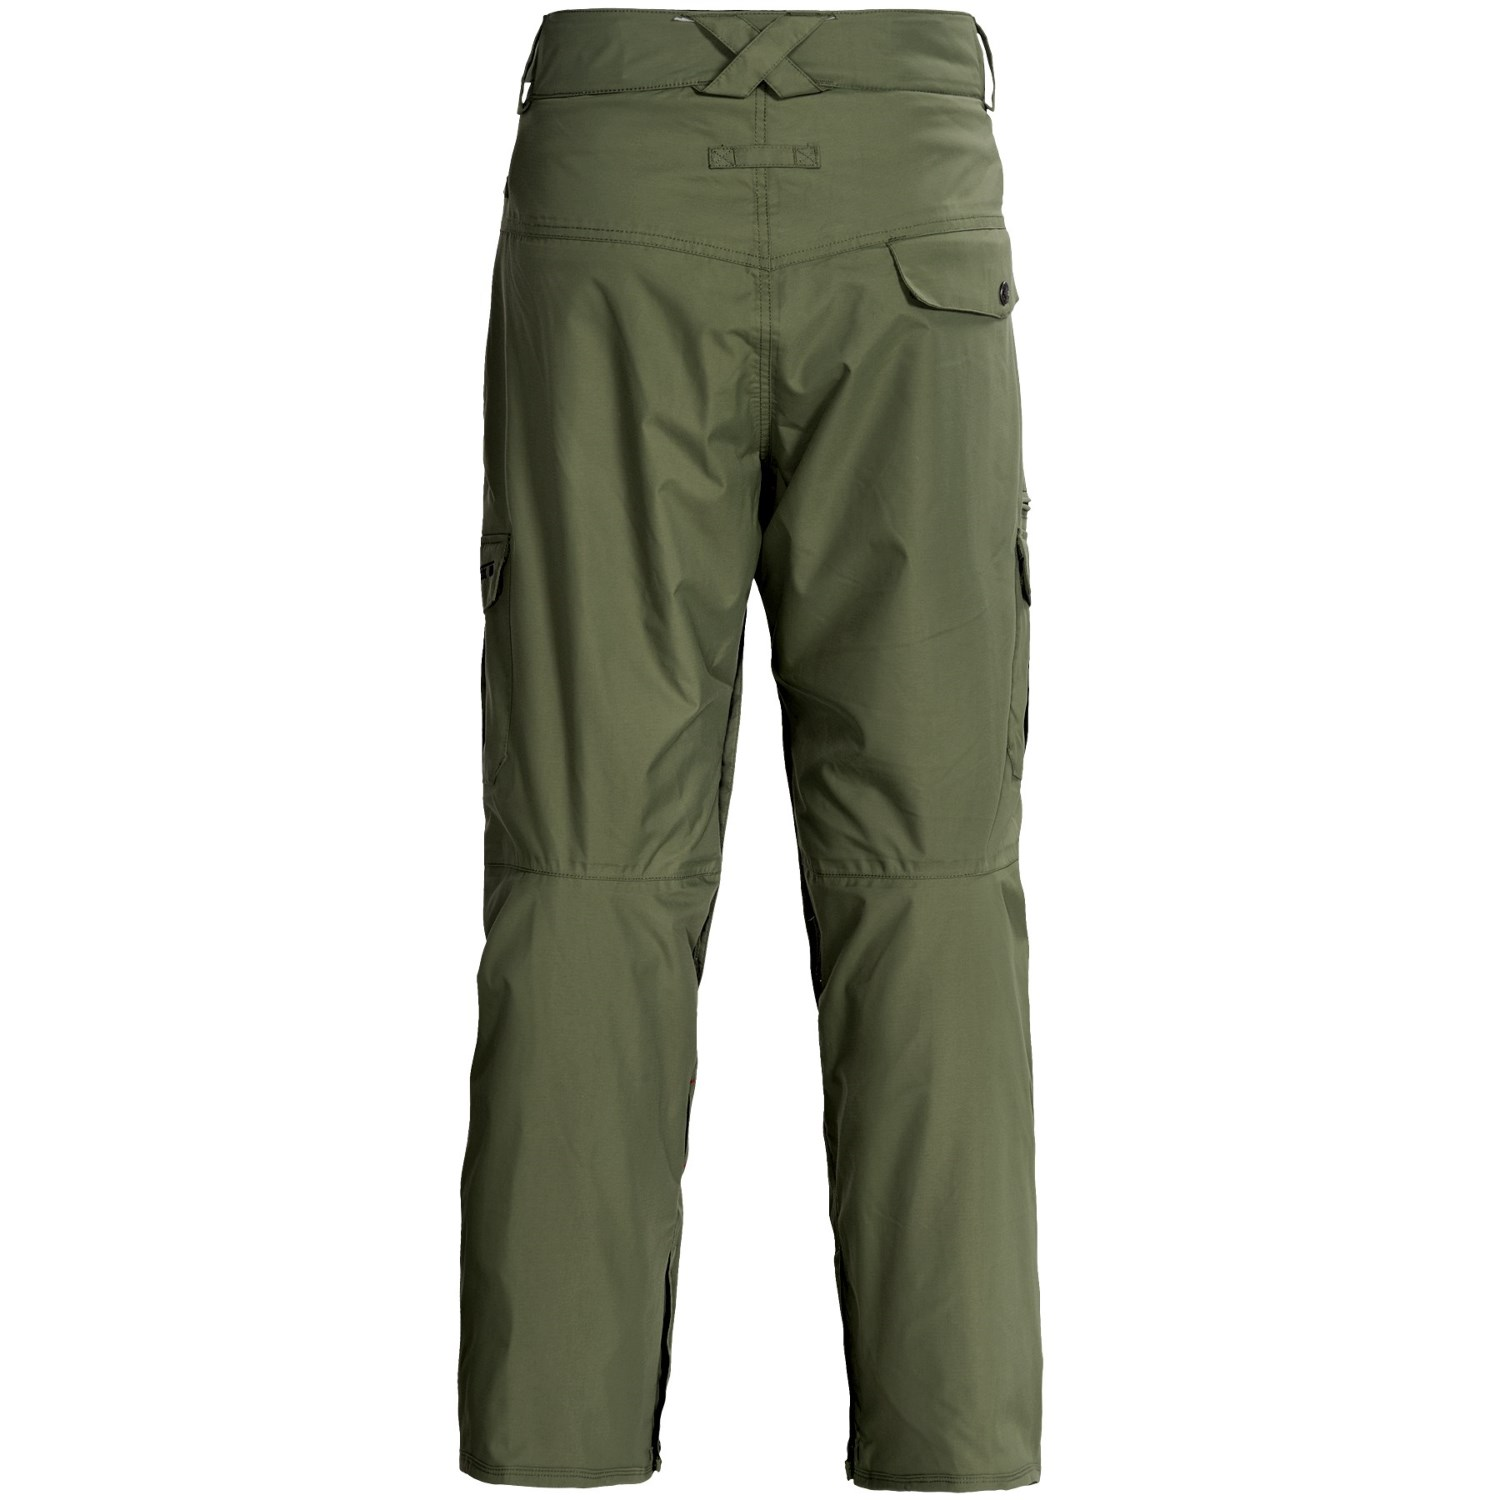 mens cargo pants clearance - Pi Pants